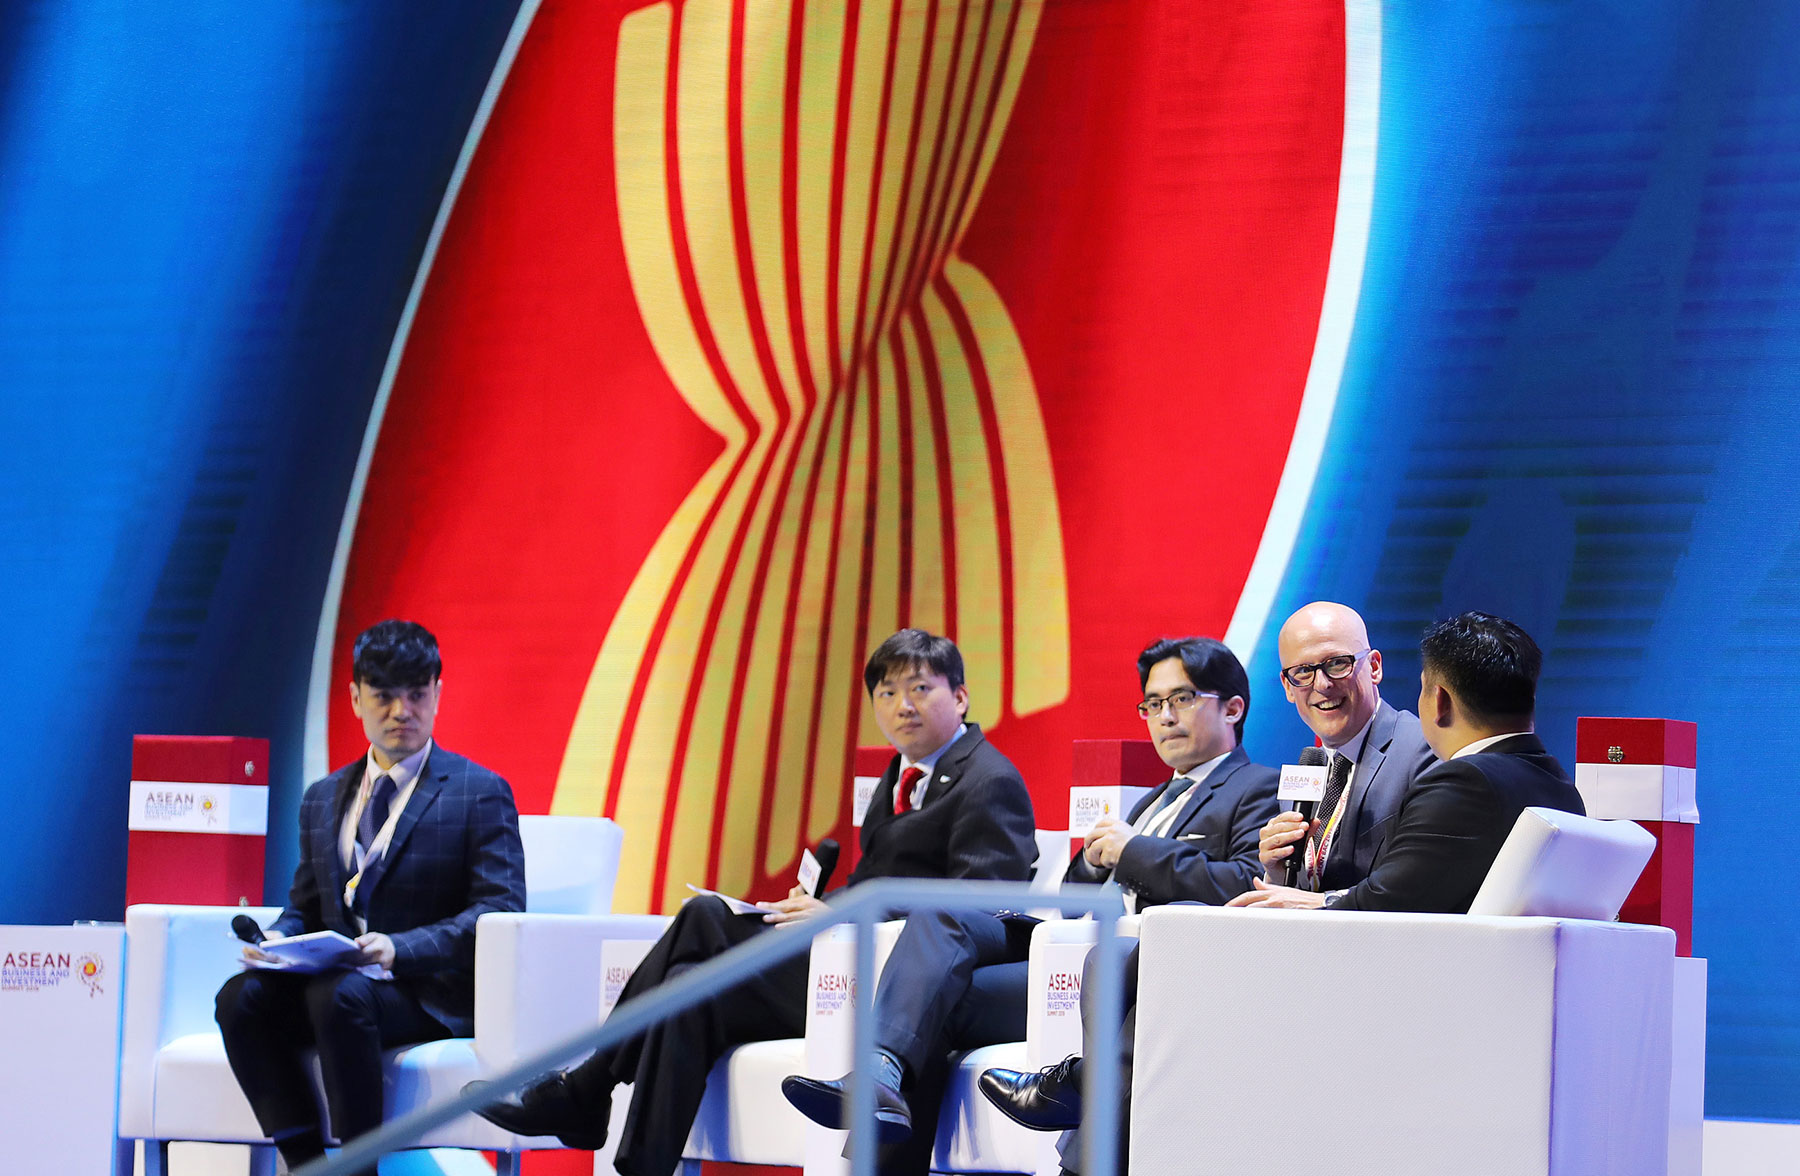 Human resource development for the 4th Industrial Revolution is emphasised at the ASEAN Business and Investment Summit 2019